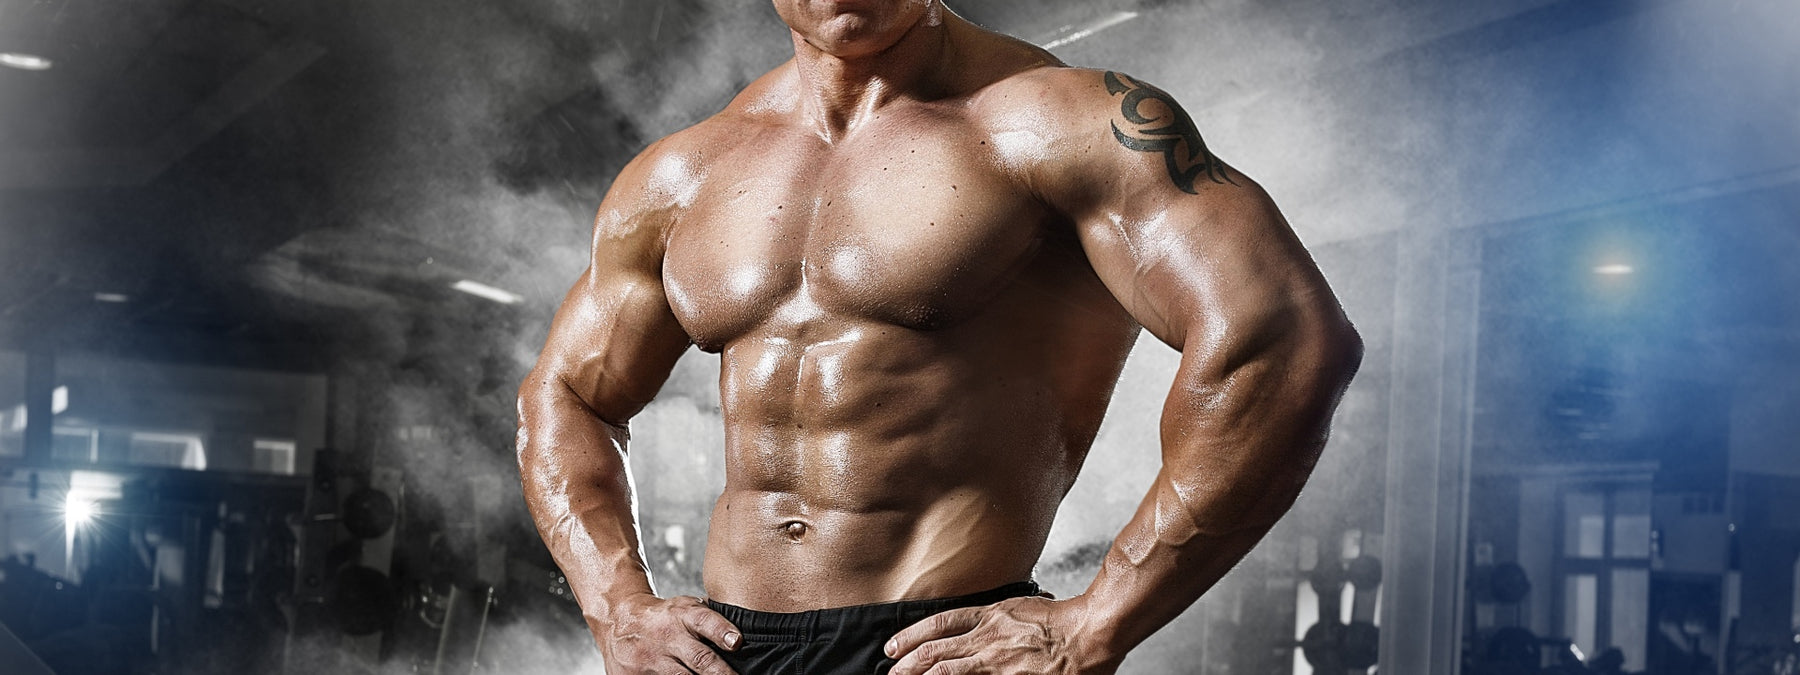 10 Week Mass Building Workout Plan